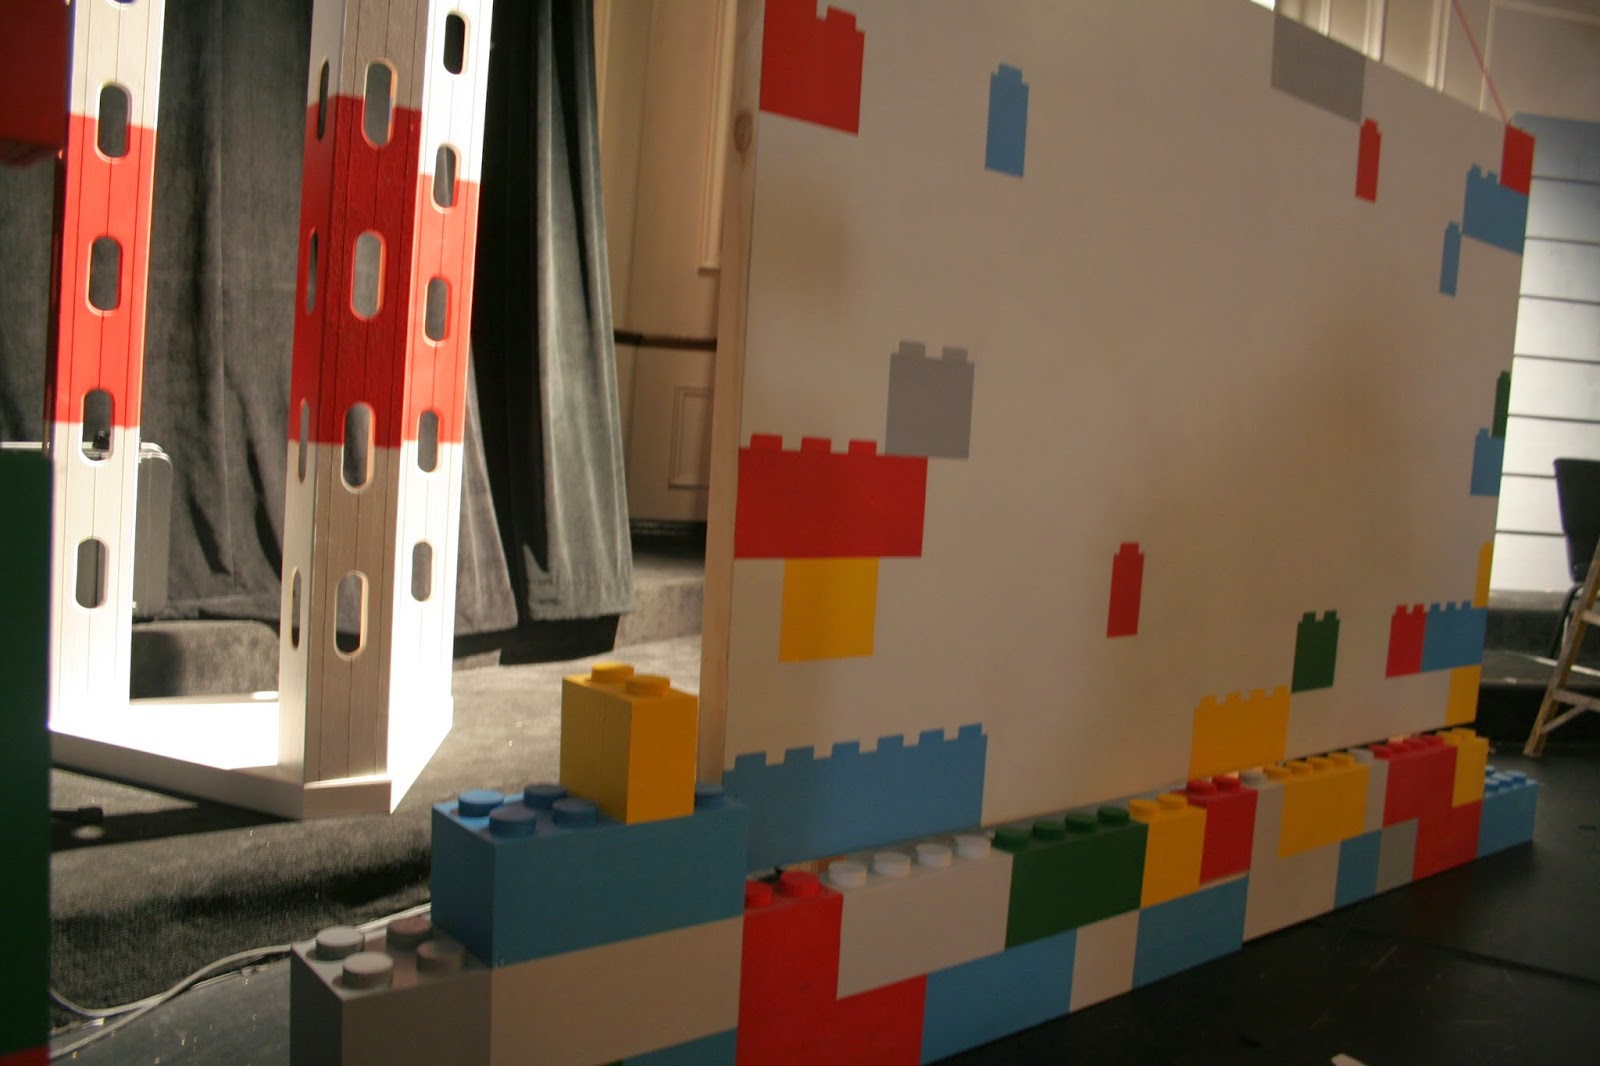 Lego Themed Stage Set For Kids The Art Of Faking It